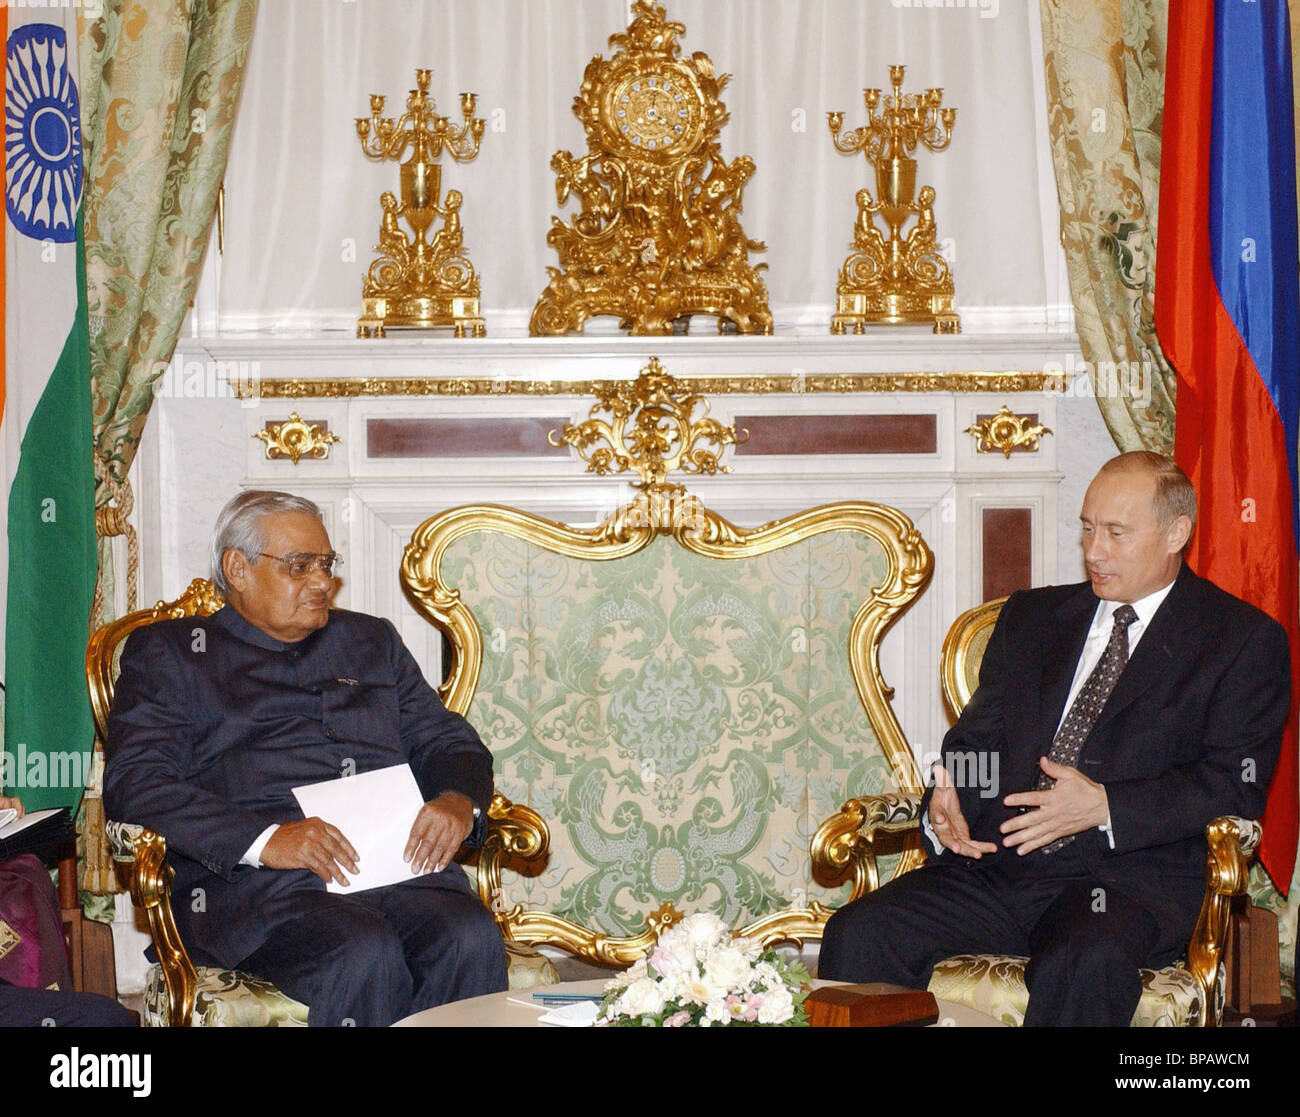 Meeting of Russian President with Indian Prime Minister - Stock Image